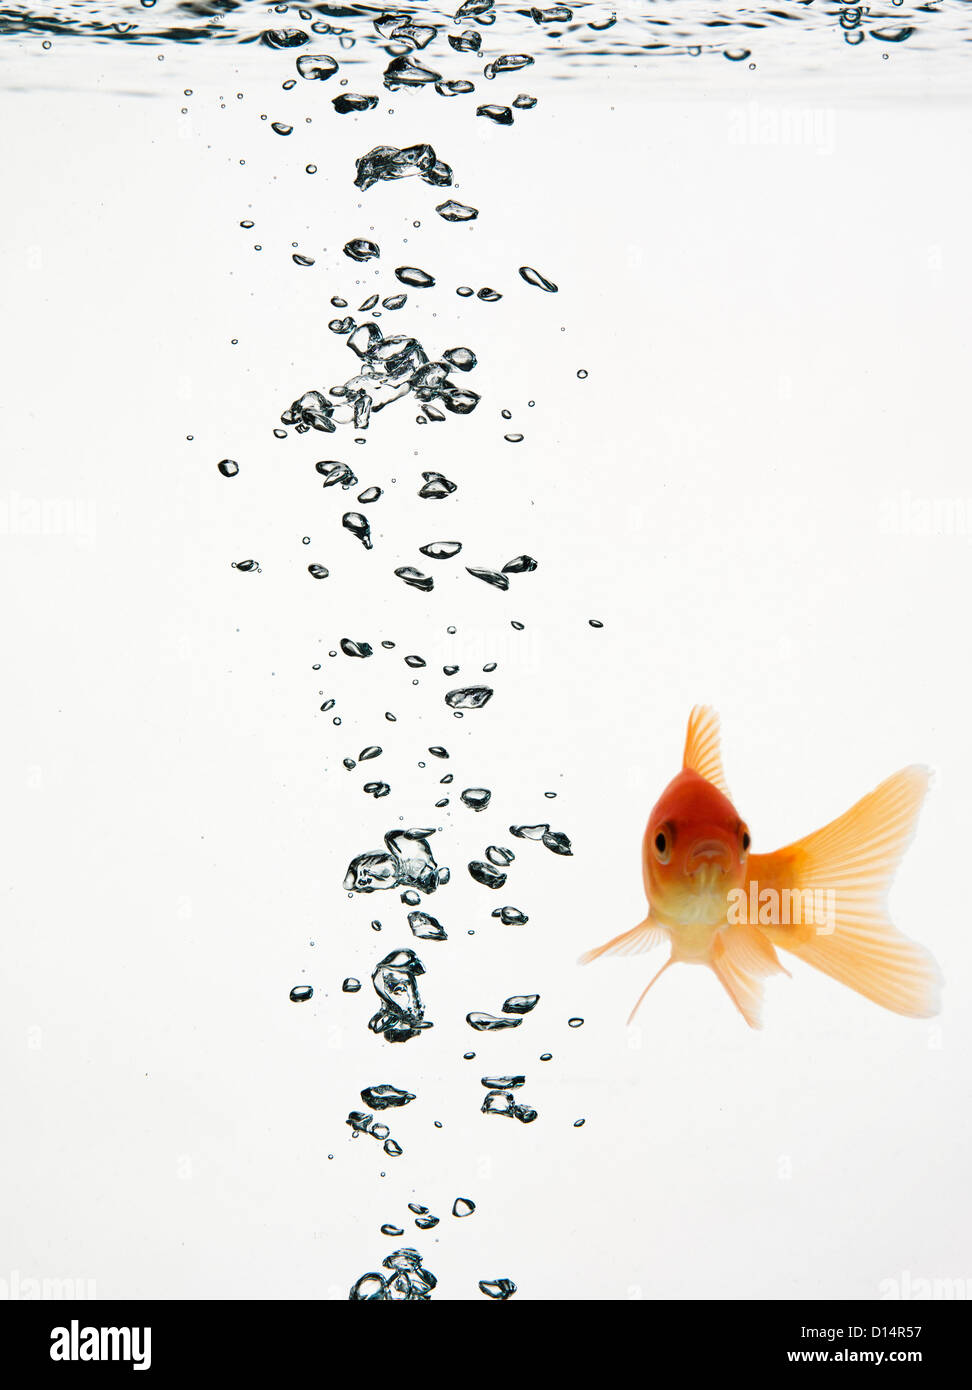 Fish swimming with bubbles water - Stock Image